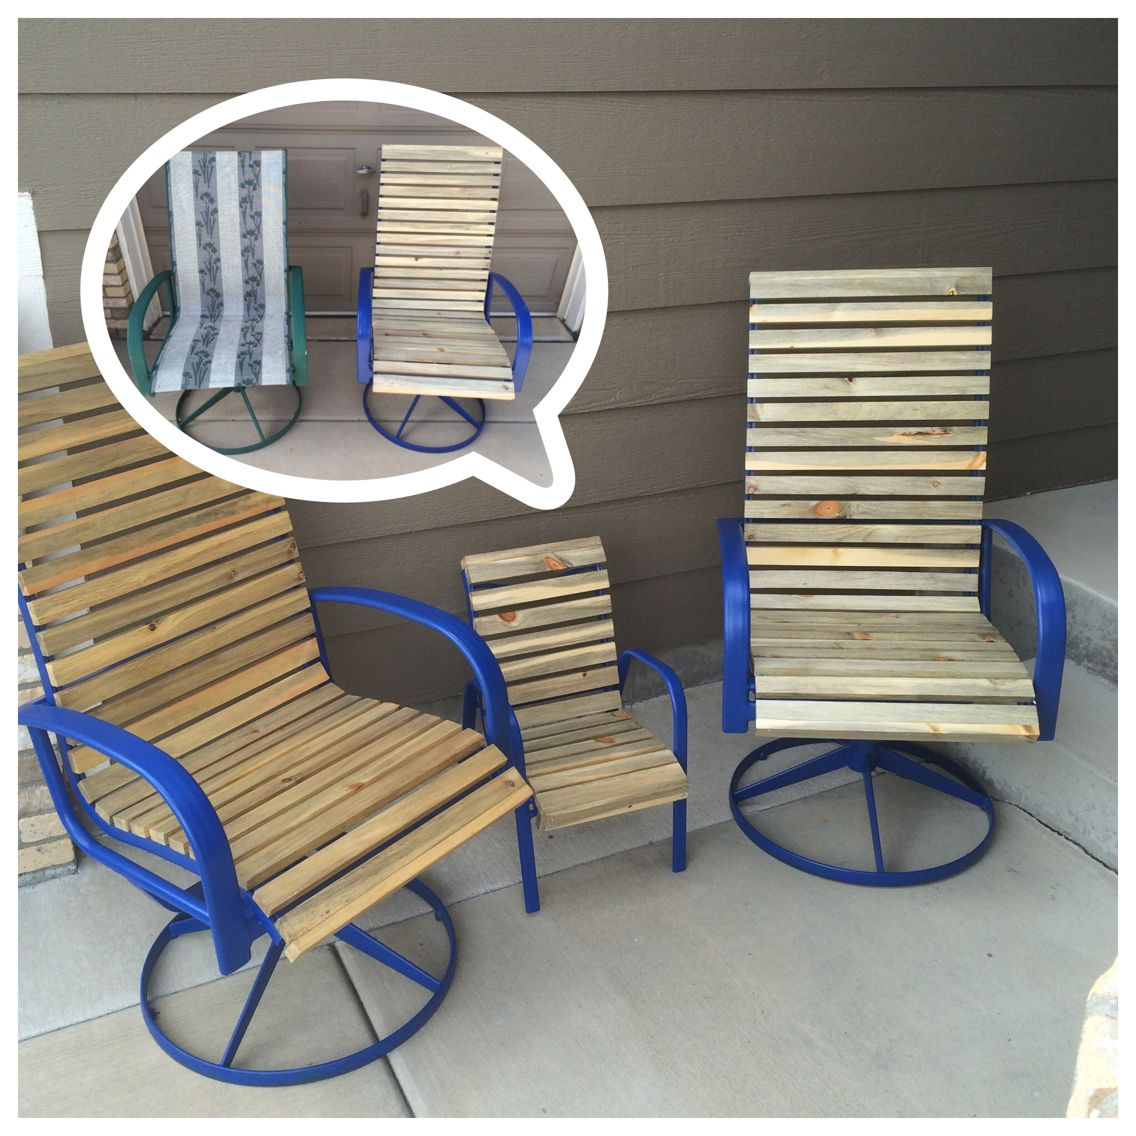 Torn Outdoor Chairs Refinished With Beetle Kill